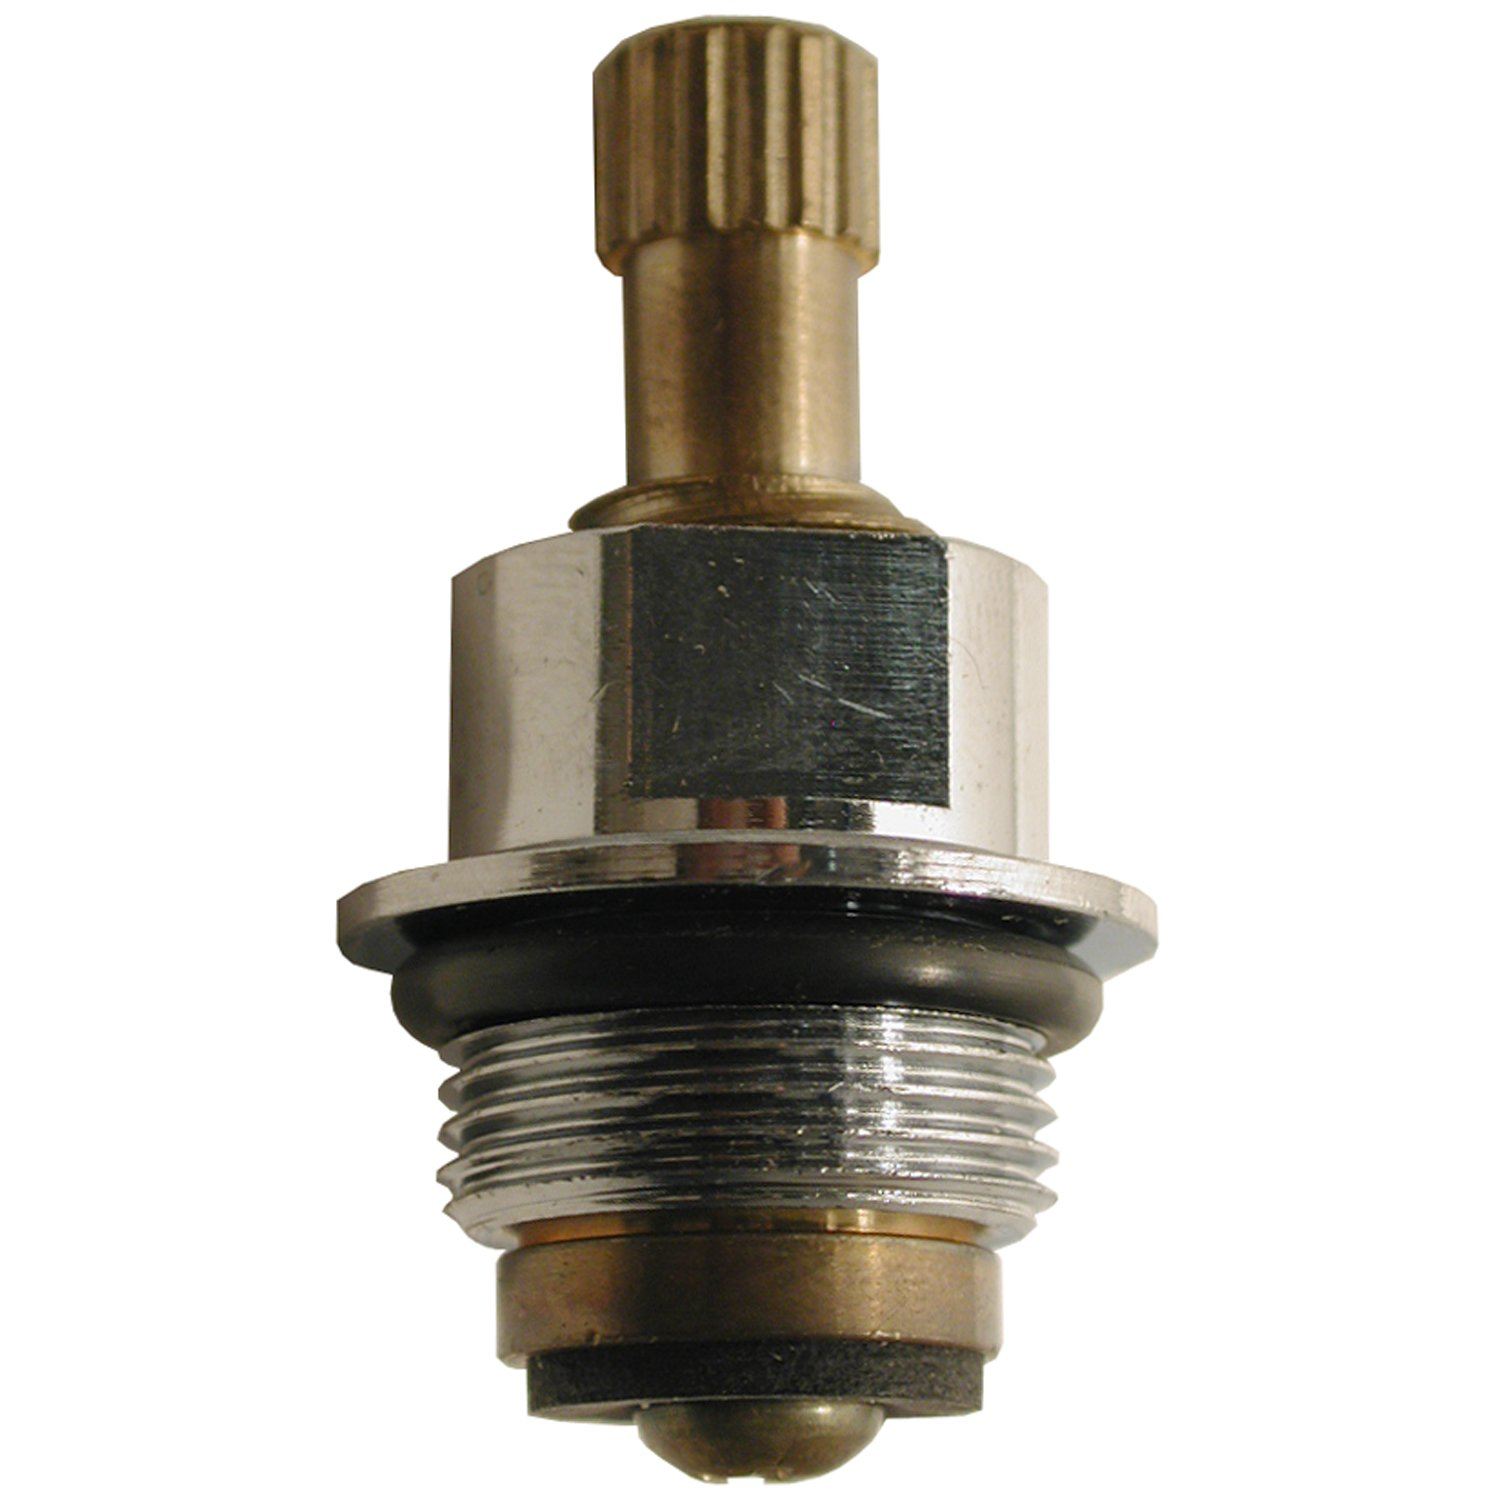 LASCO S-225-3 Hot & Cold Stem for American Standard 2483 - Faucet ...